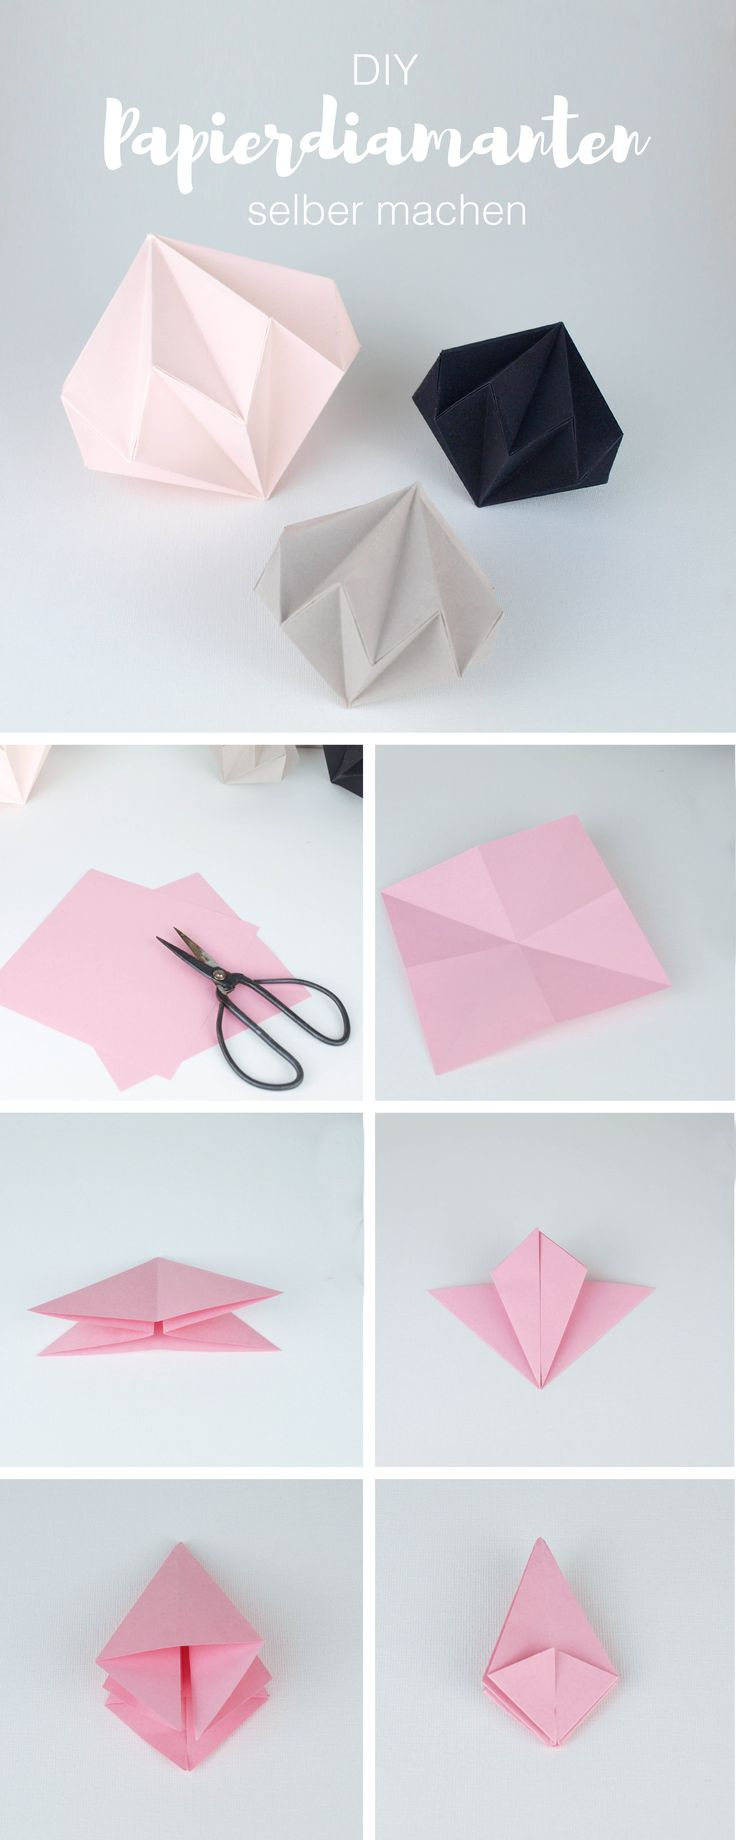 31 Cool and Crafty DIY Picture Frames  Best DIY Picture Frames and Photo Frame Ideas -Paper Frames – How To Make Cool Handmade Projects from Wood, Canvas, Instagram Photos. Creative Birthday Gifts, Fun Crafts for Friends and Wall Art Tutorials diyprojectsfortee… The post 31 Cool and Crafty DIY Picture Frames appeared first on Woman Casual.